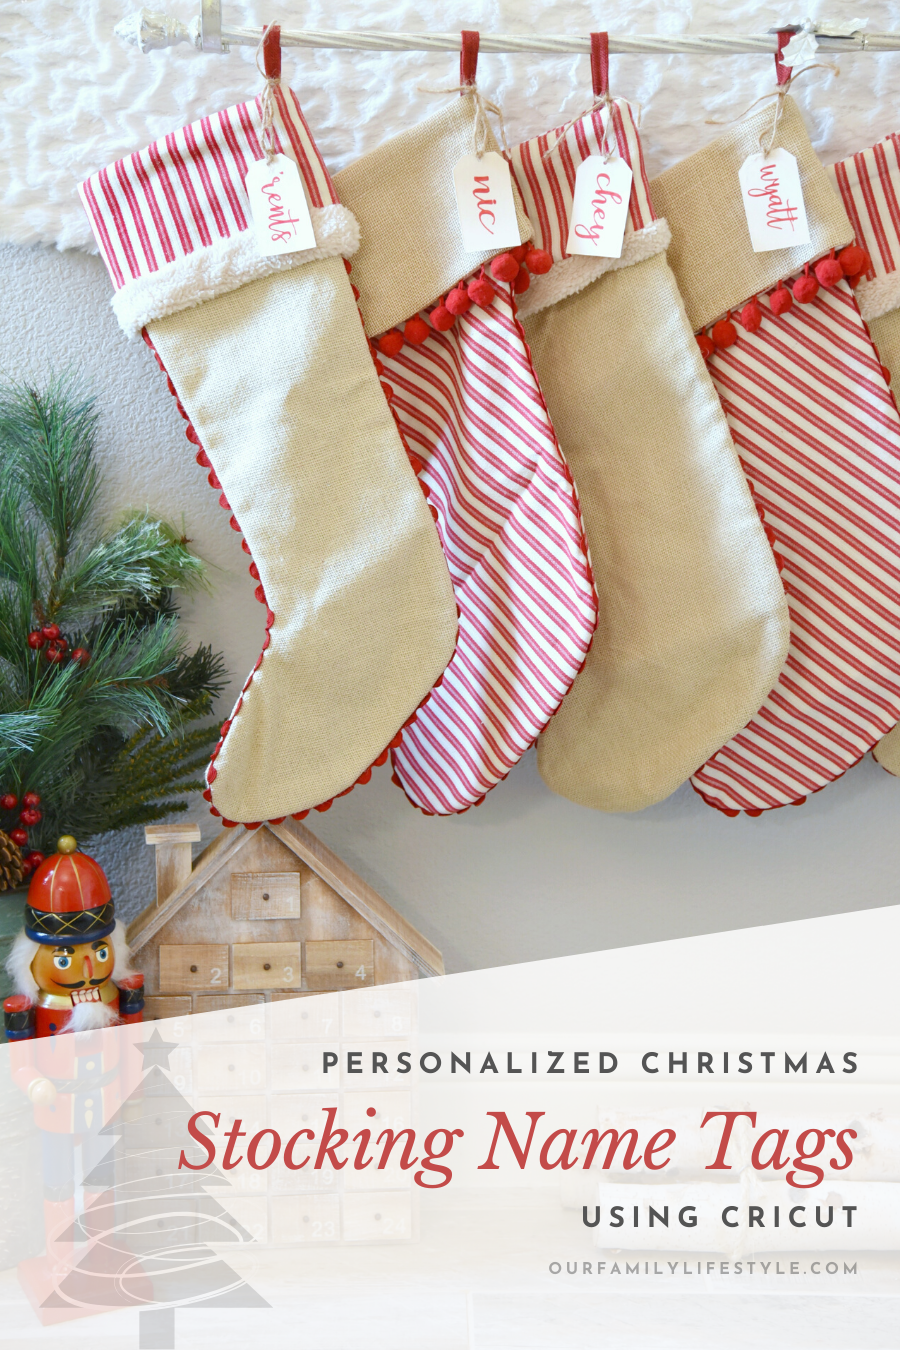 Simple Personalized Christmas Stocking Name Tags Using Cricut